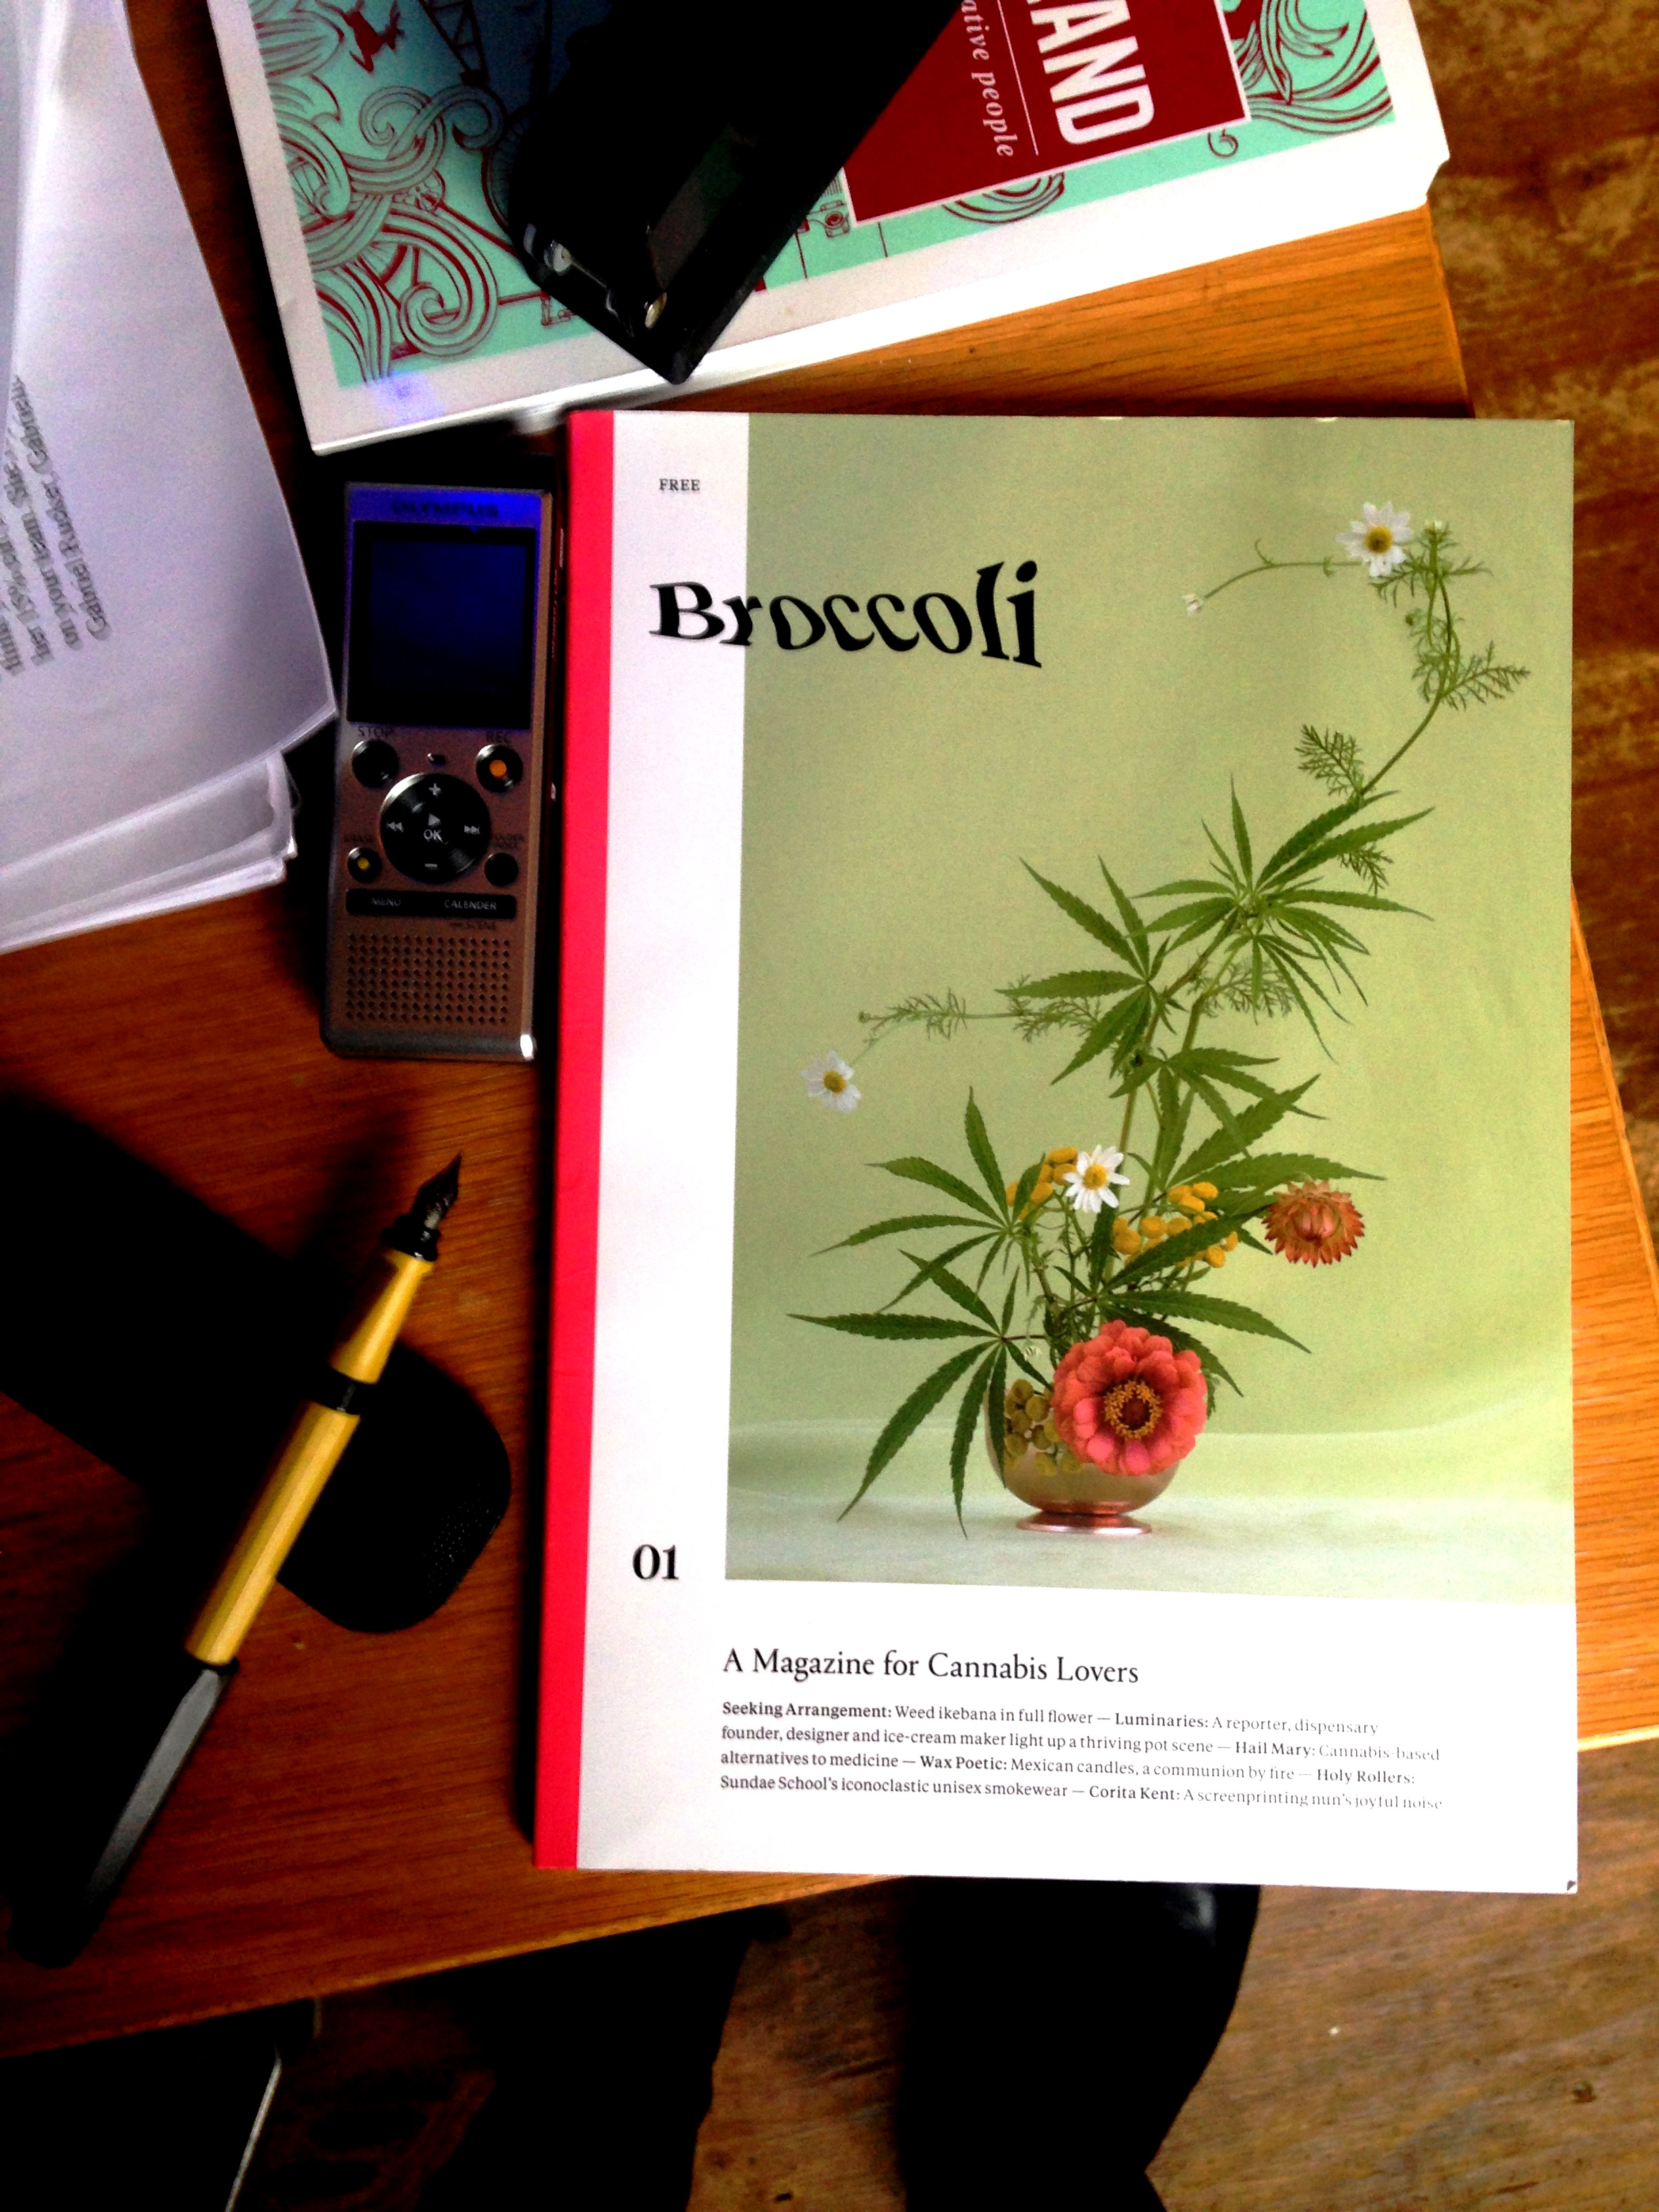 Party attendees got a sneak peek at former Kinfolk art director Anja Charbonneau's new smart and beautiful cannabis magazine   Broccoli   (for women by women) from Anja herself!! The magazine launched in late 2017 and issue 2 comes out this spring. And....